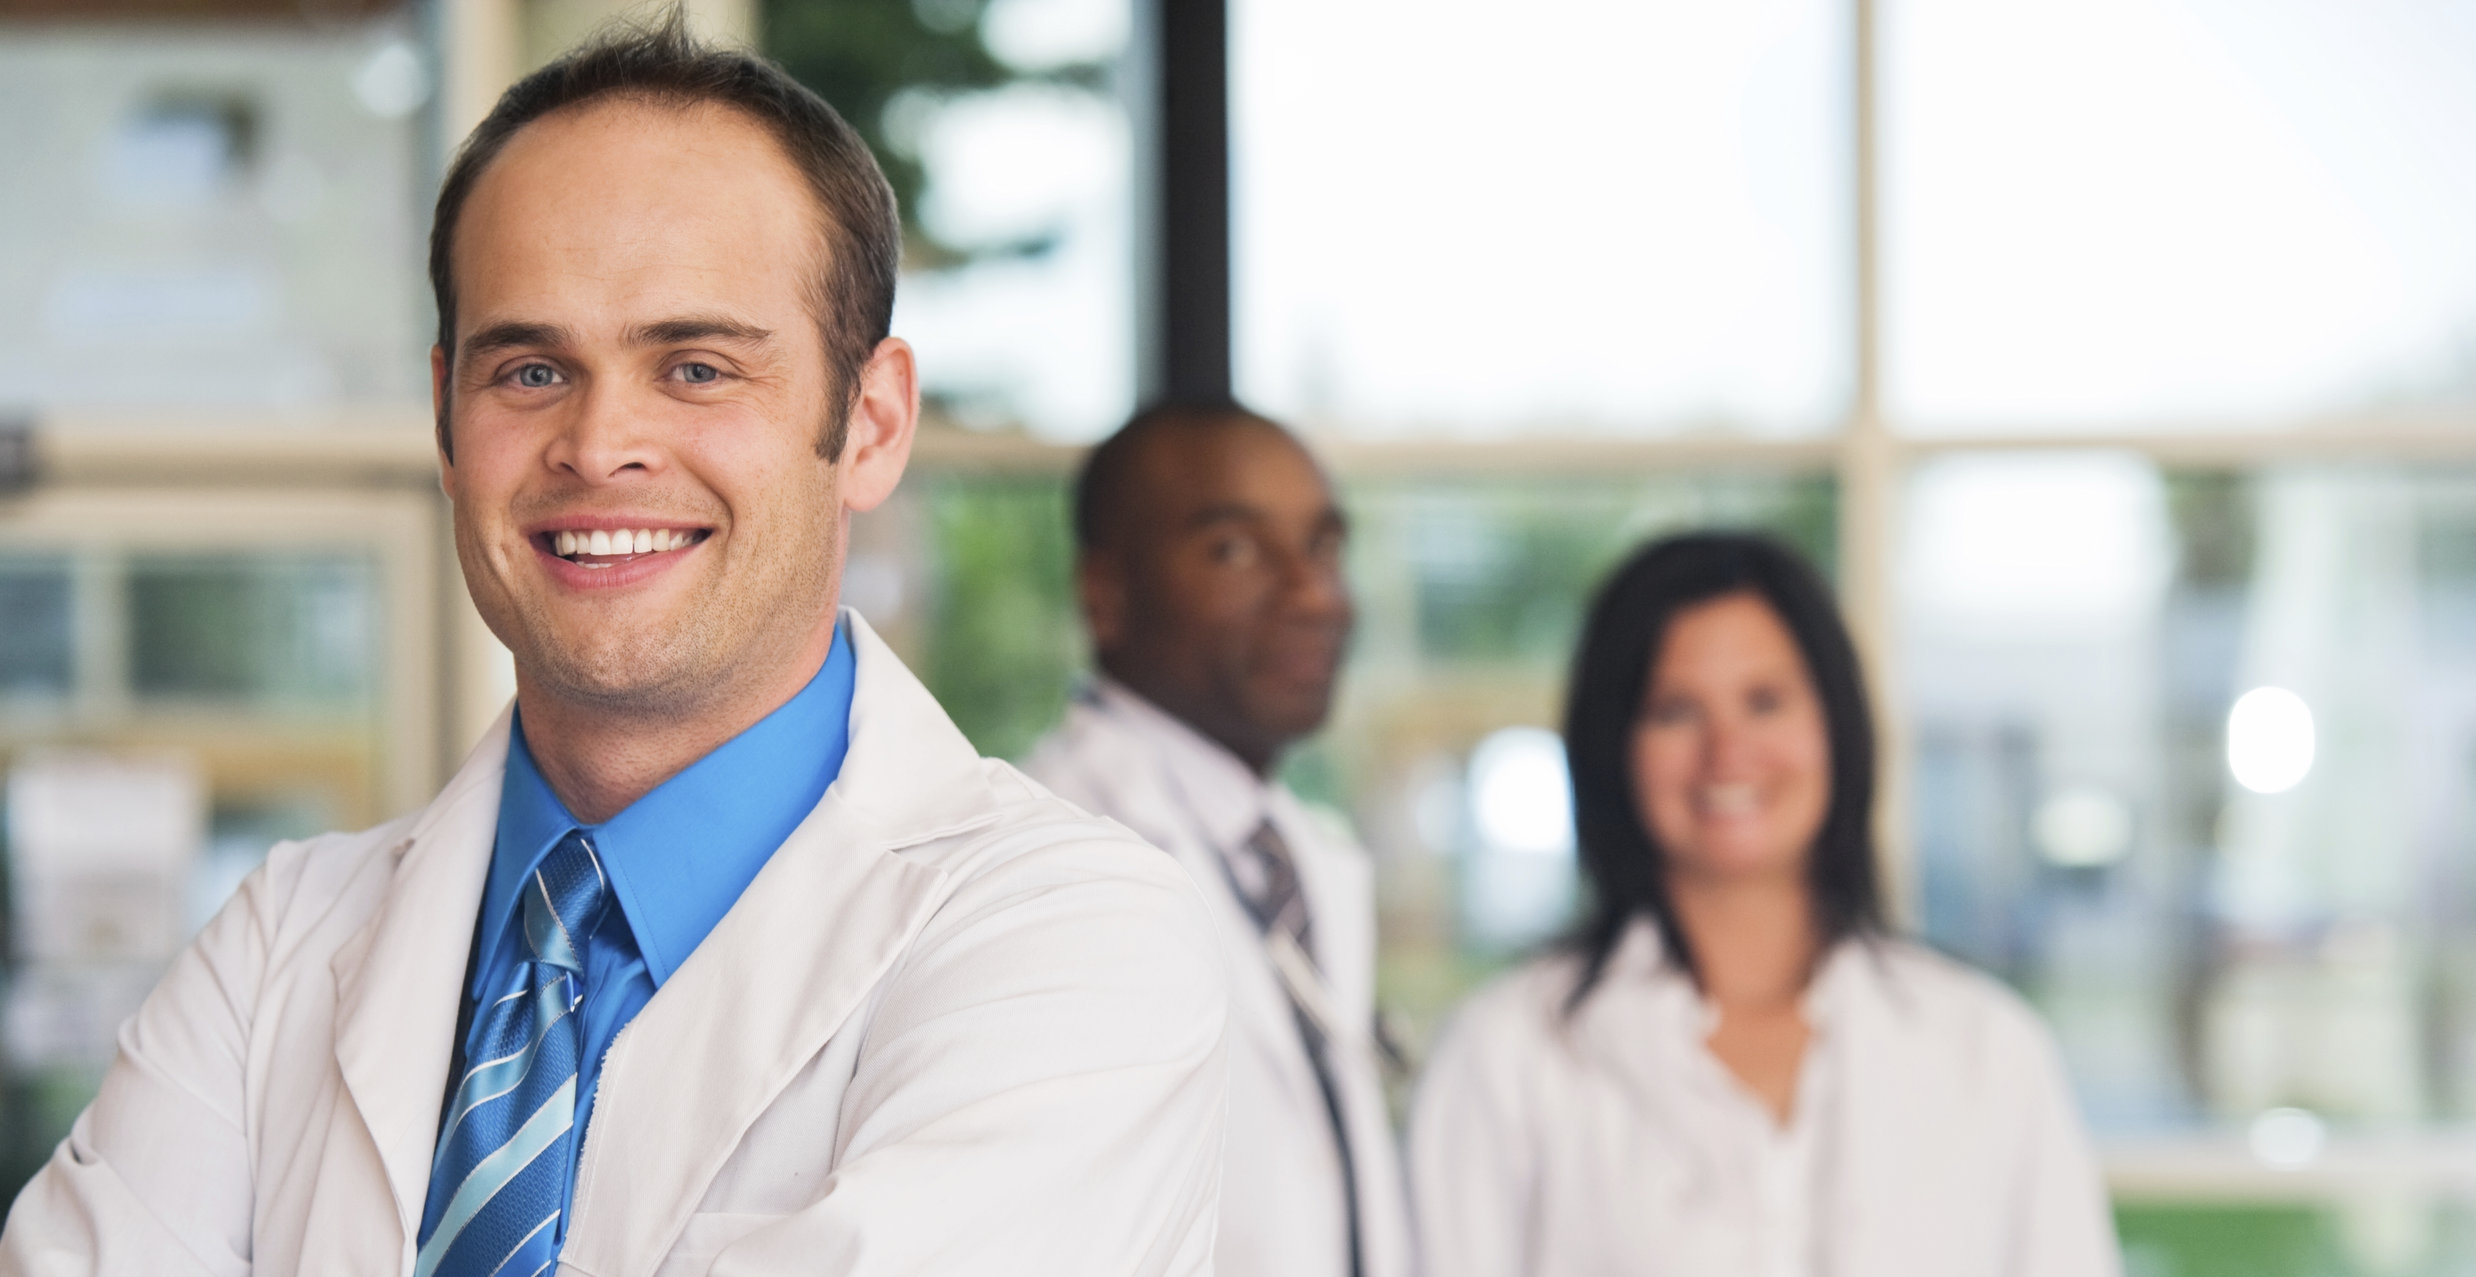 Other Healthcare professionals -